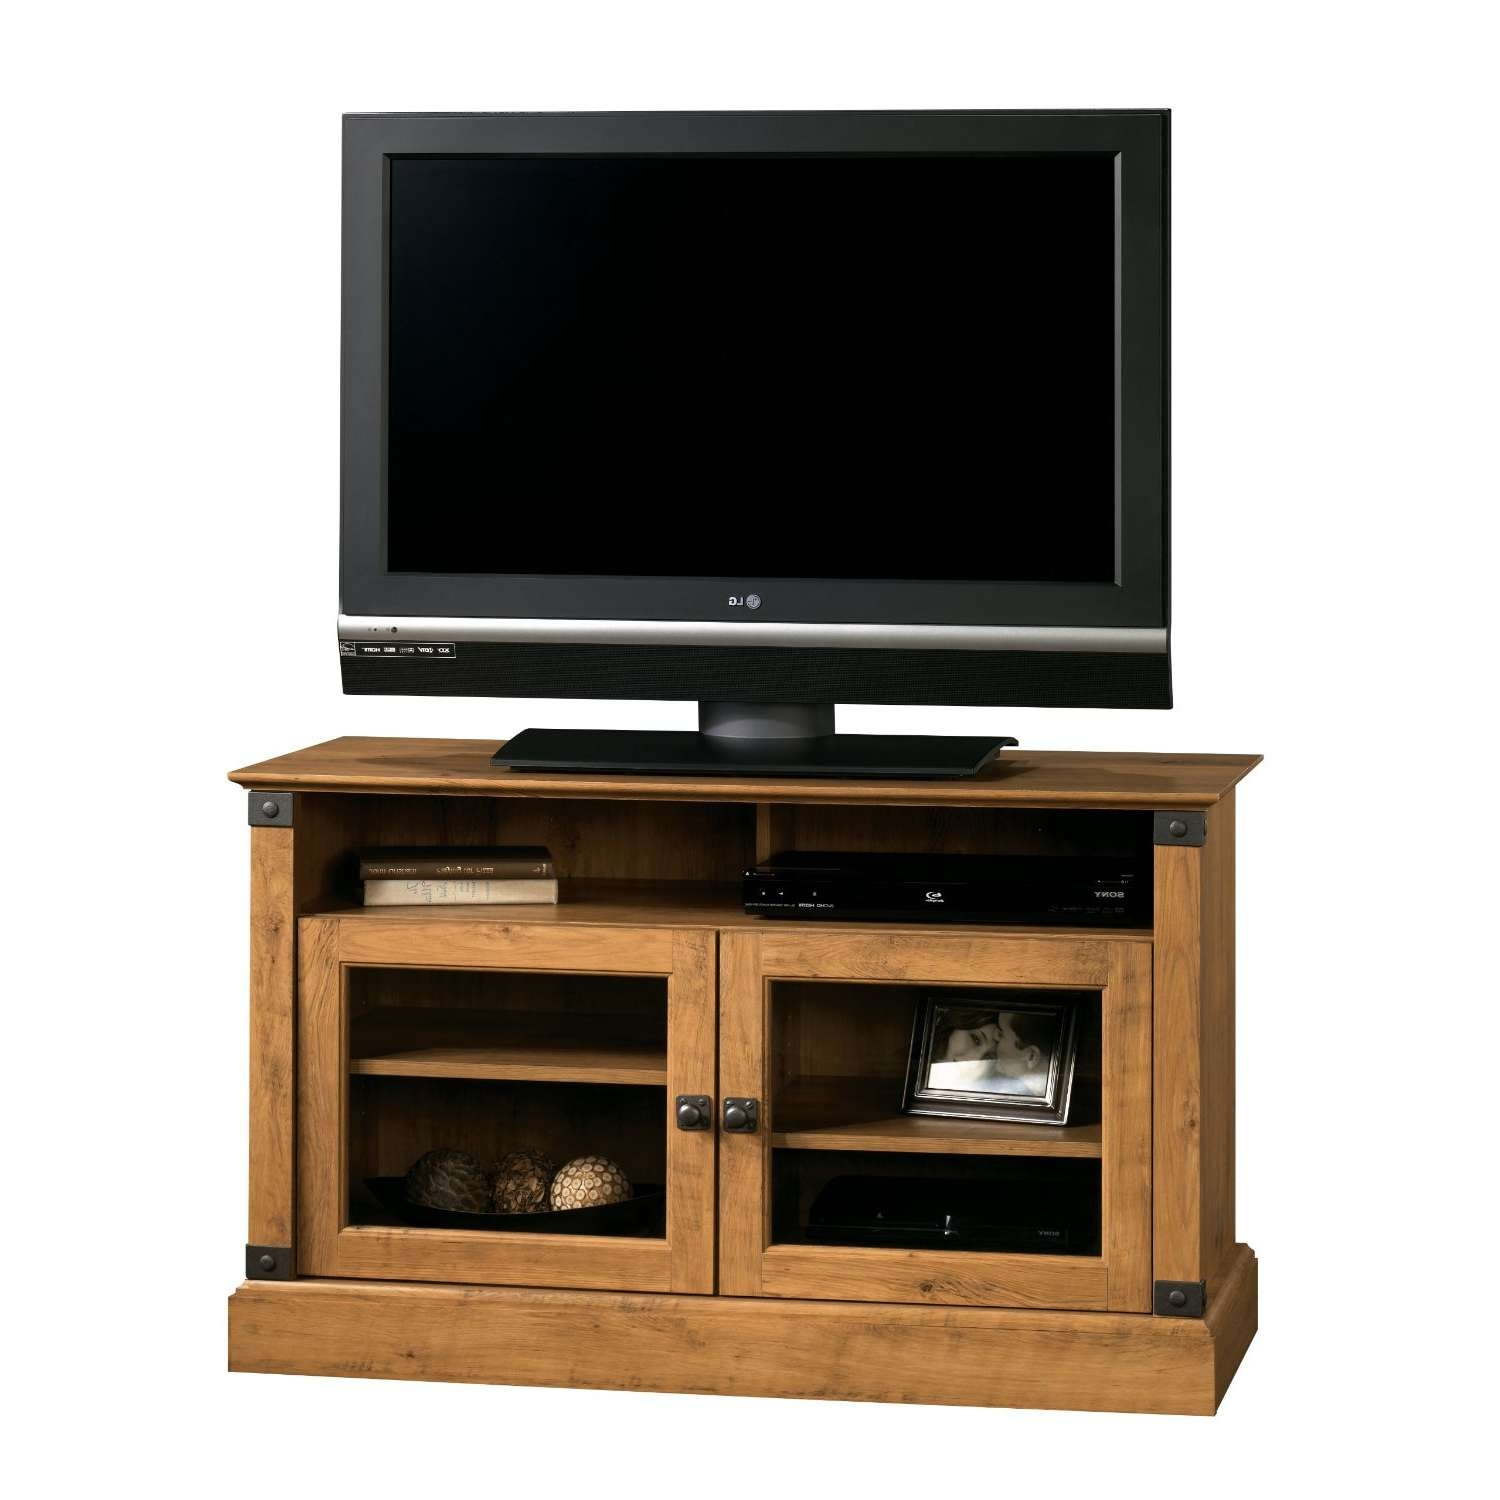 Furniture: Single Cube Reclaimed Wood Tv Stand With Storage Base Inside Single Tv Stands (View 7 of 15)